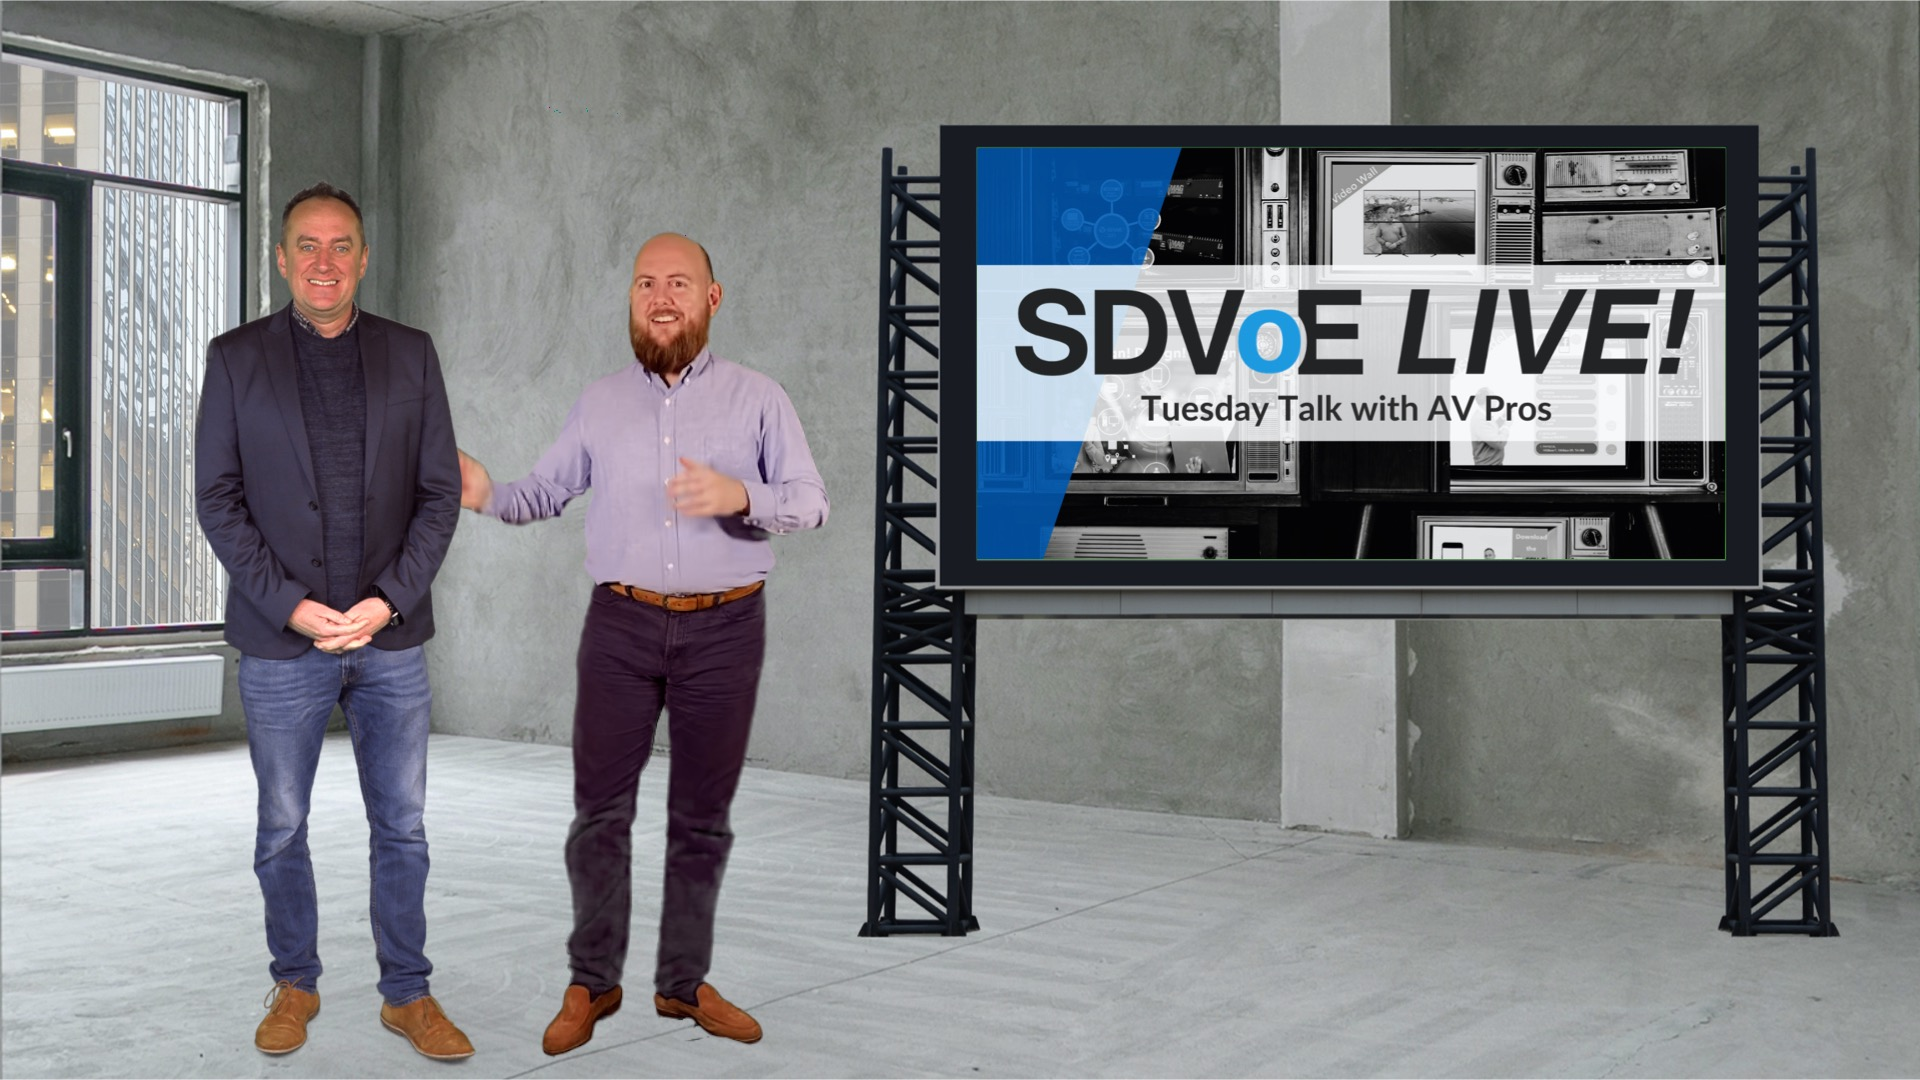 SDVoE LIVE! Episode 8: HOW Special Is That?